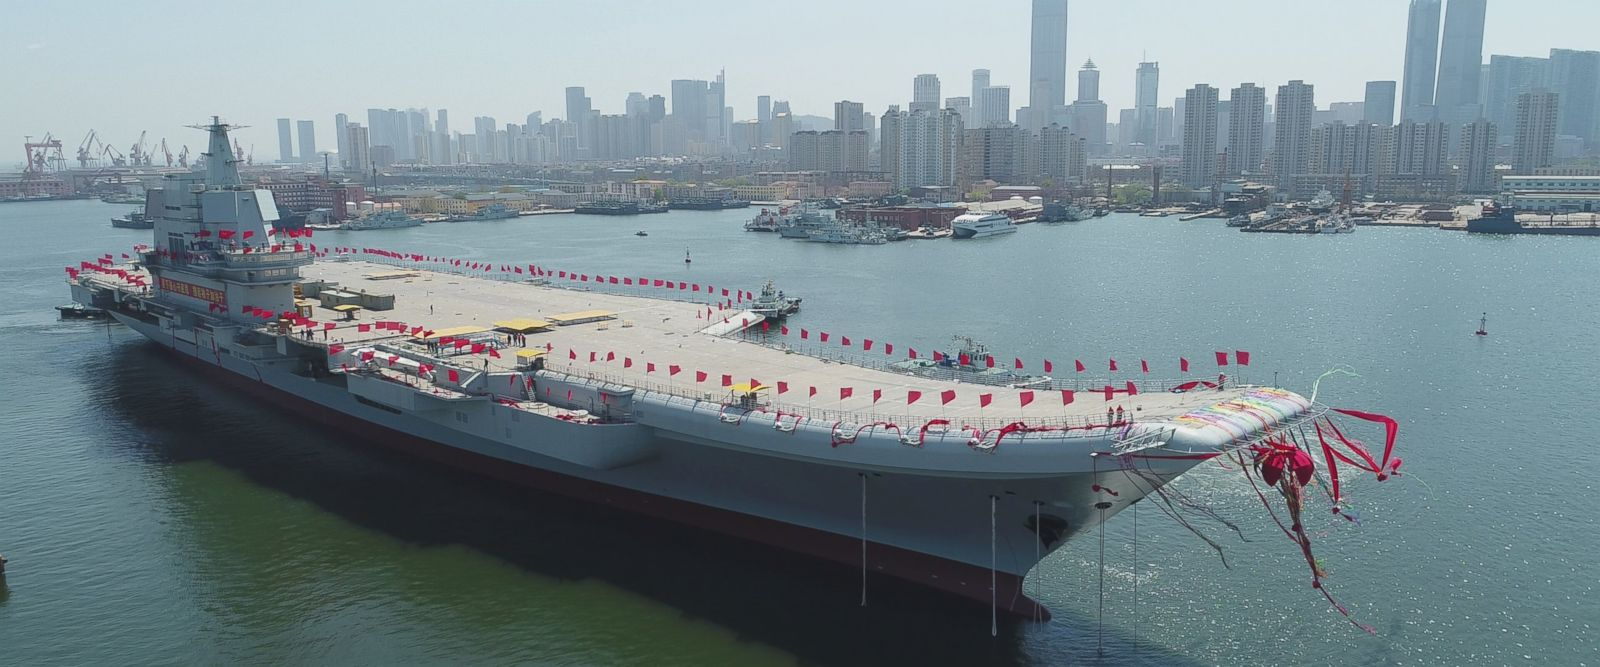 news.usni.org: Expert: U.S. Should See China as 'Number One' Adversary, Not Trading Partner